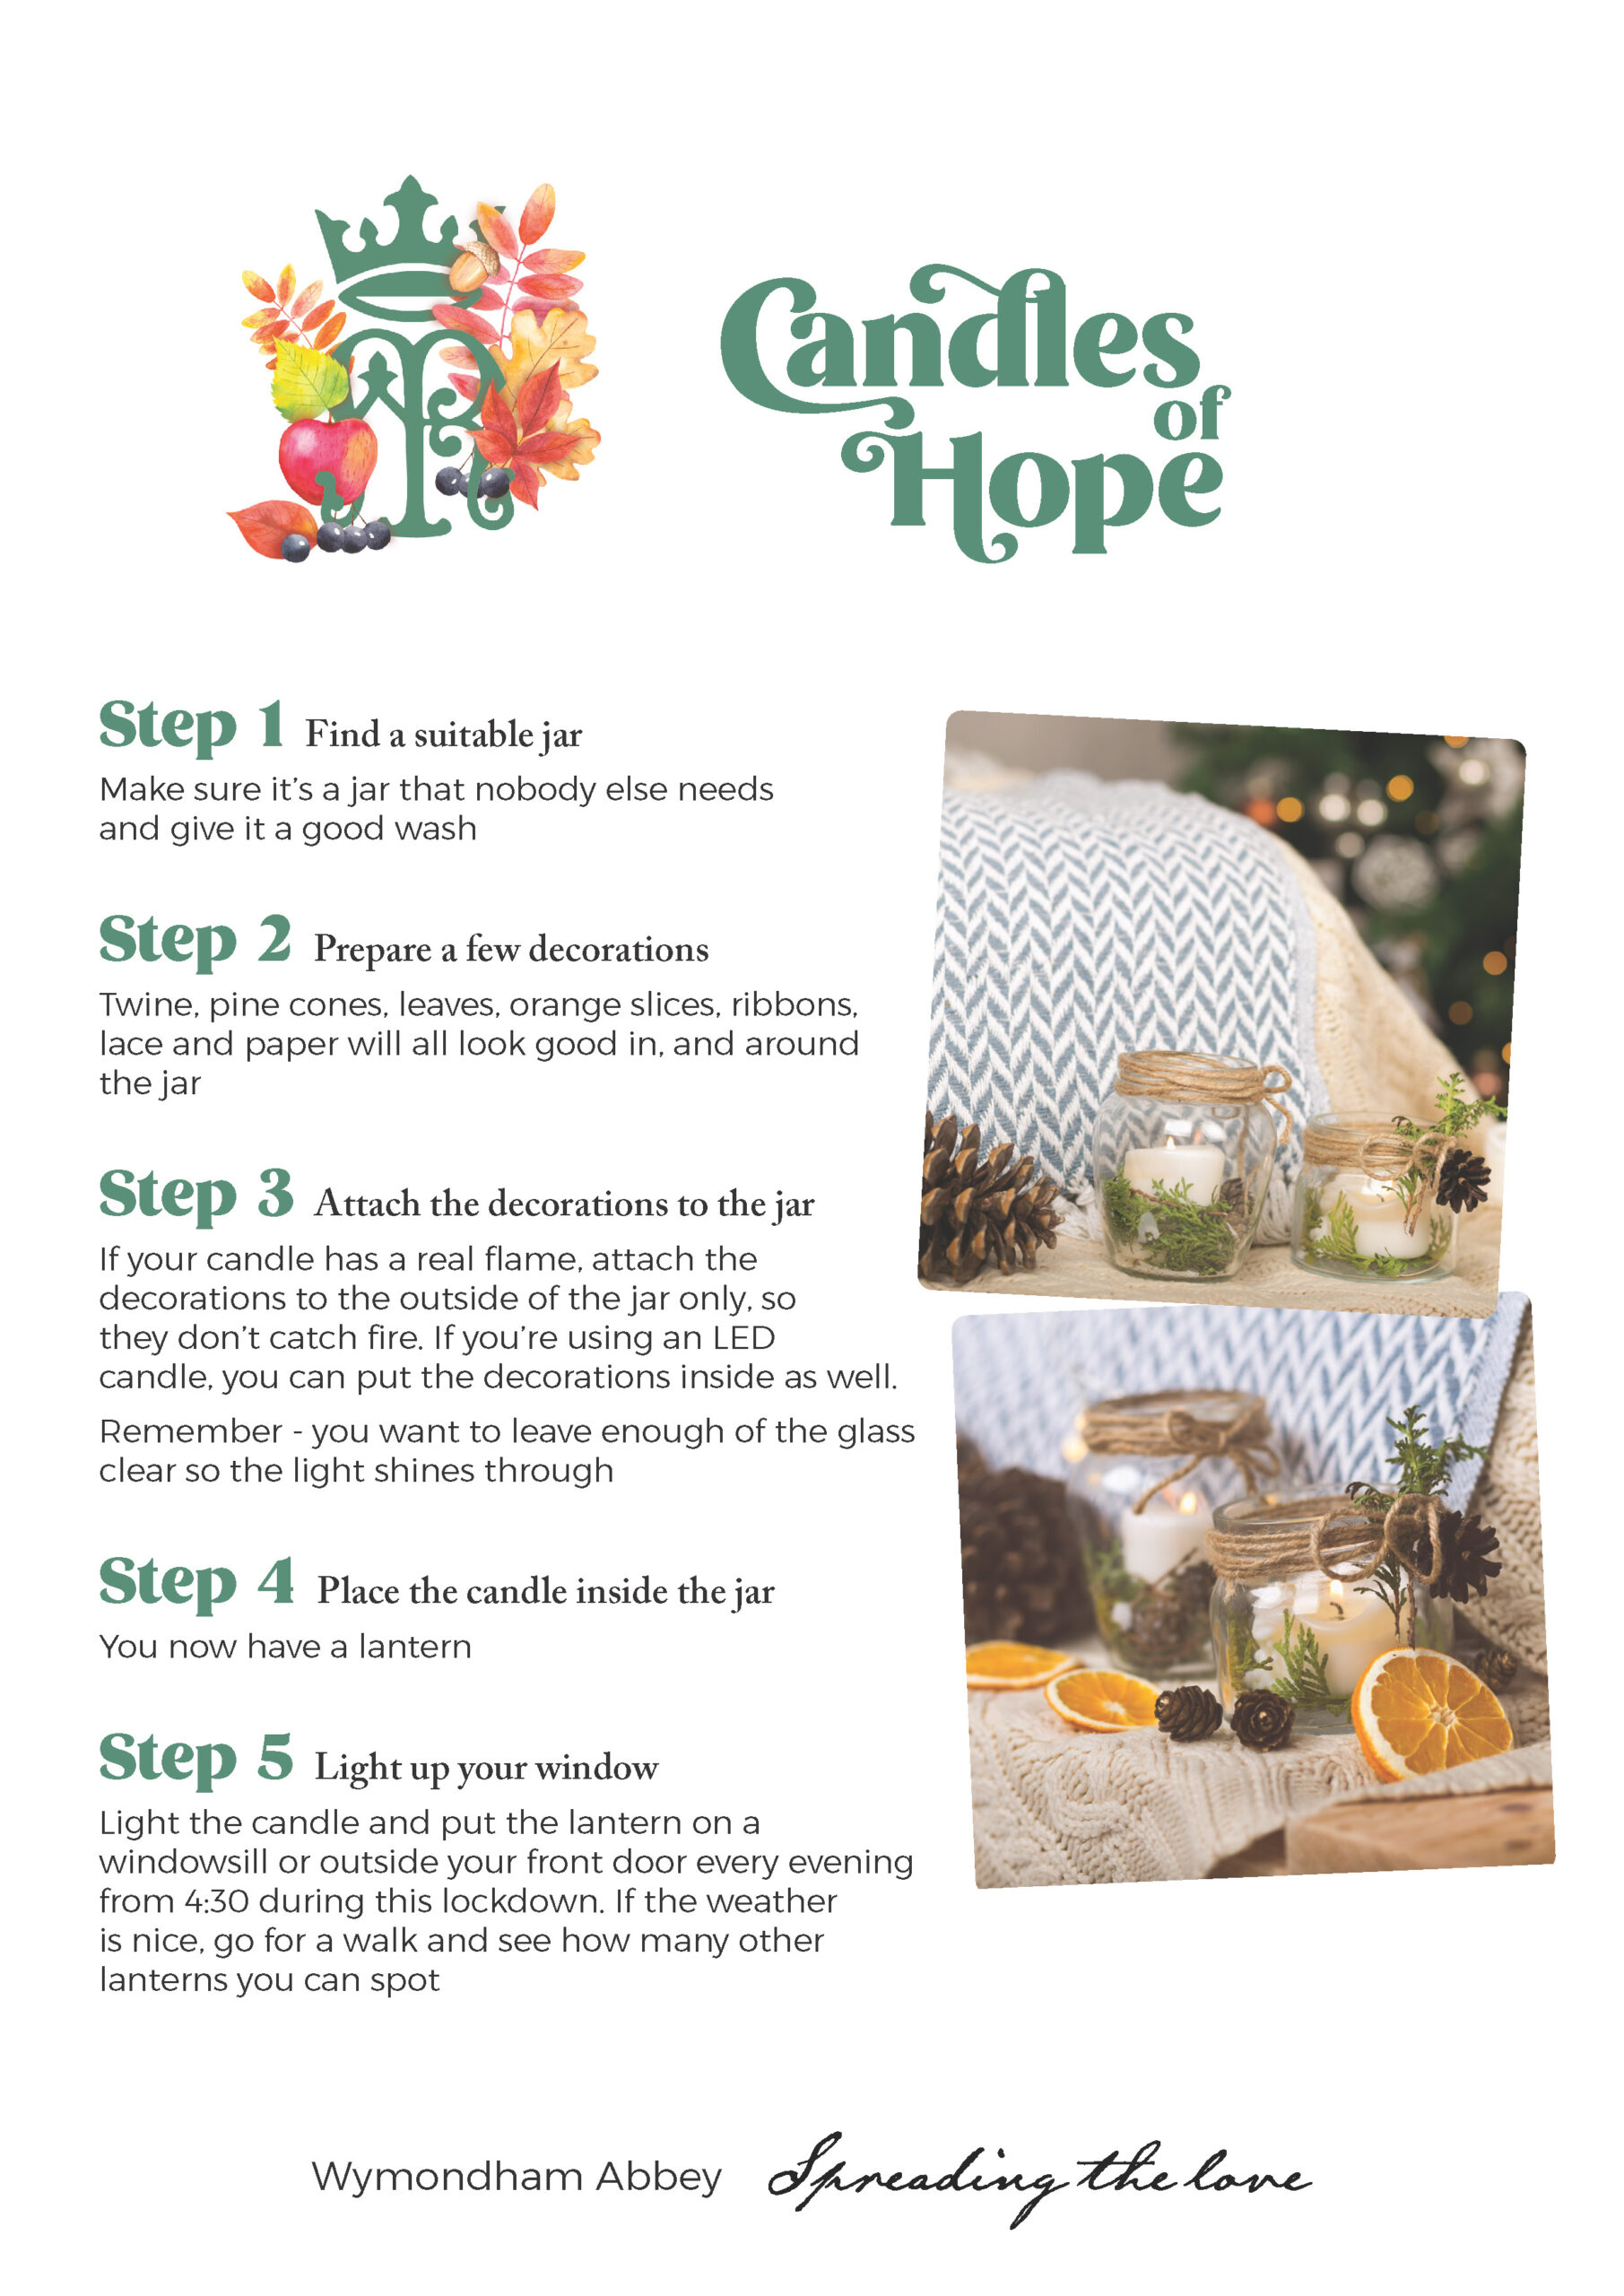 Candles of Hope Instructions